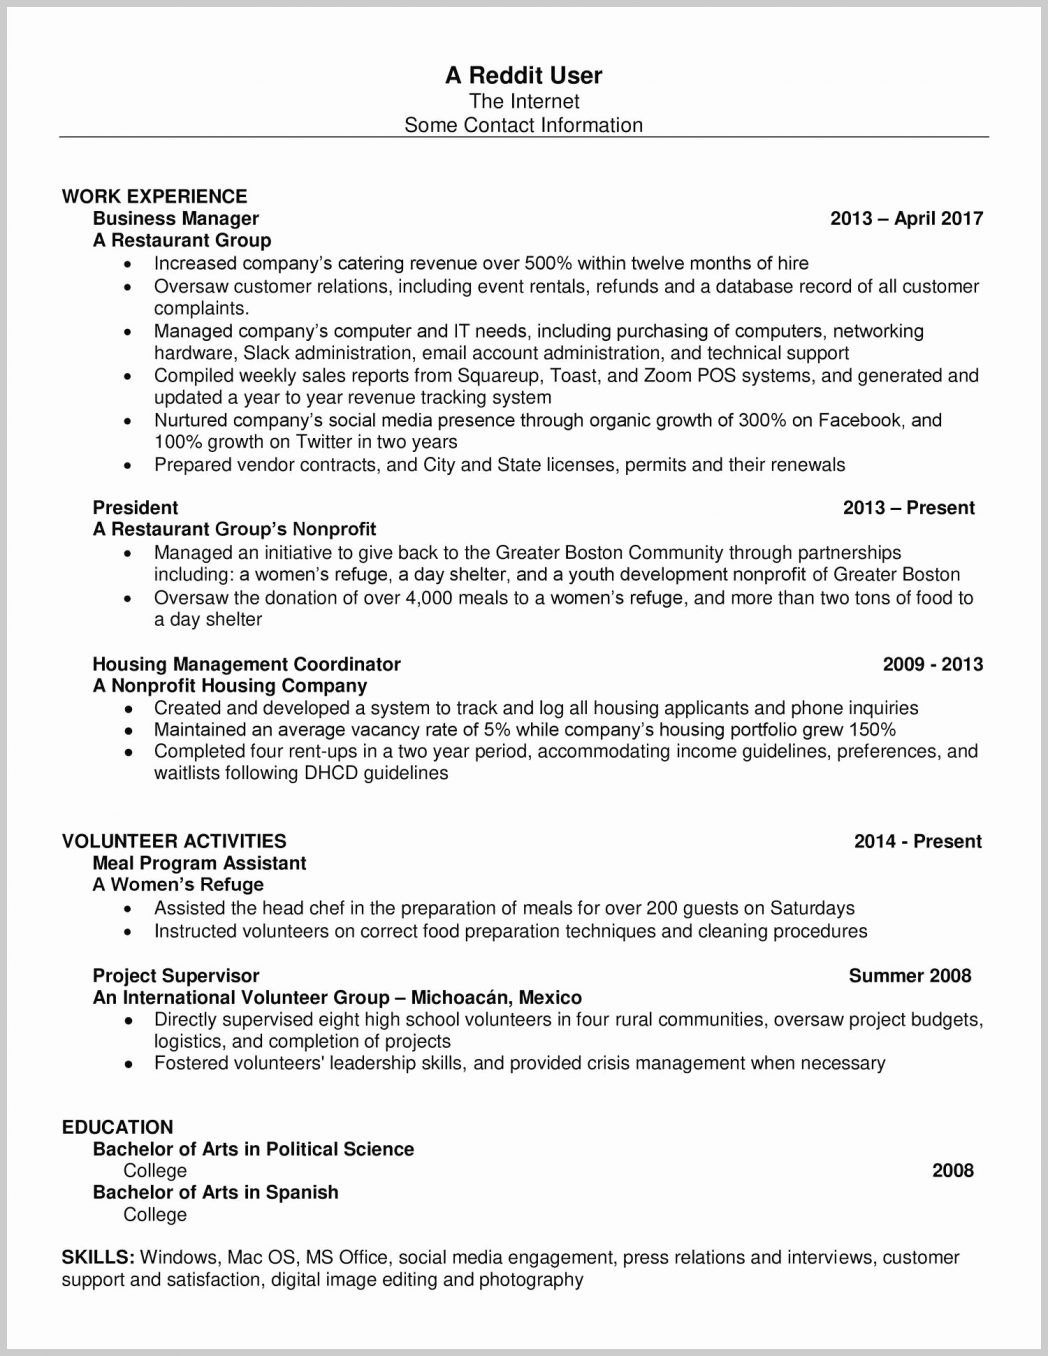 Resume Format Reddit With Images Resume Format Resume Job